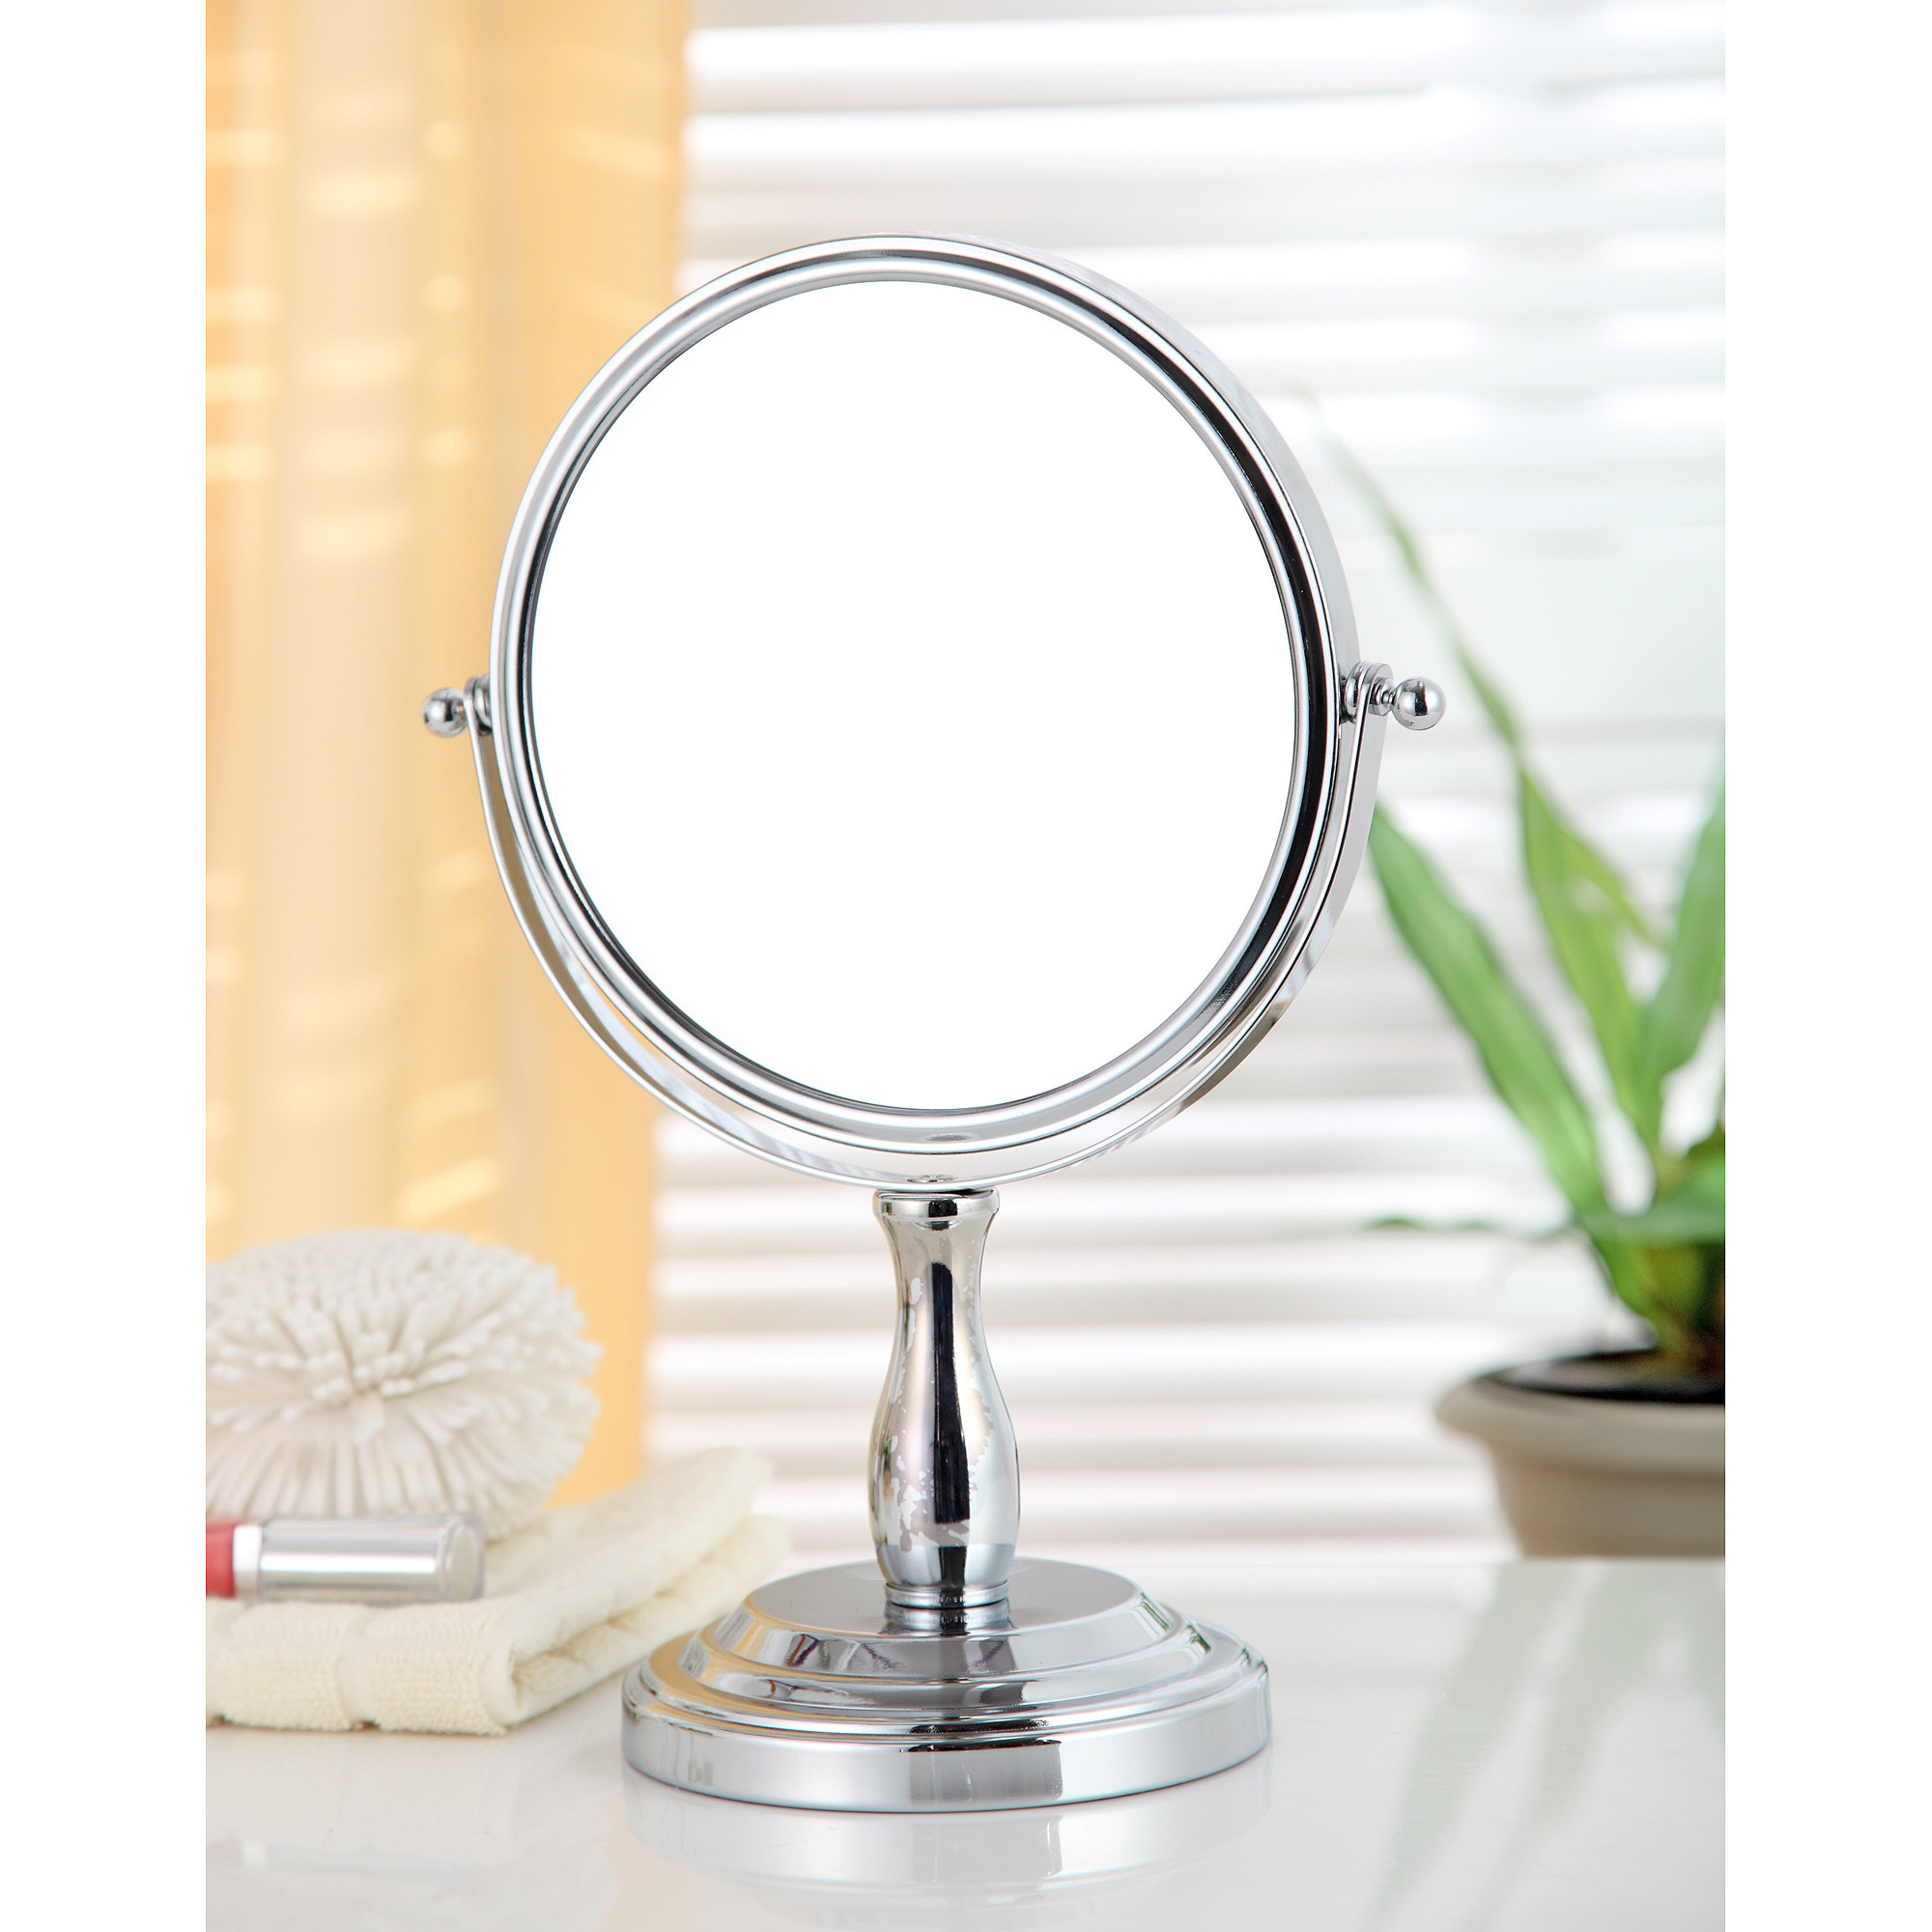 Test Rite Standing Mirror, Chrome